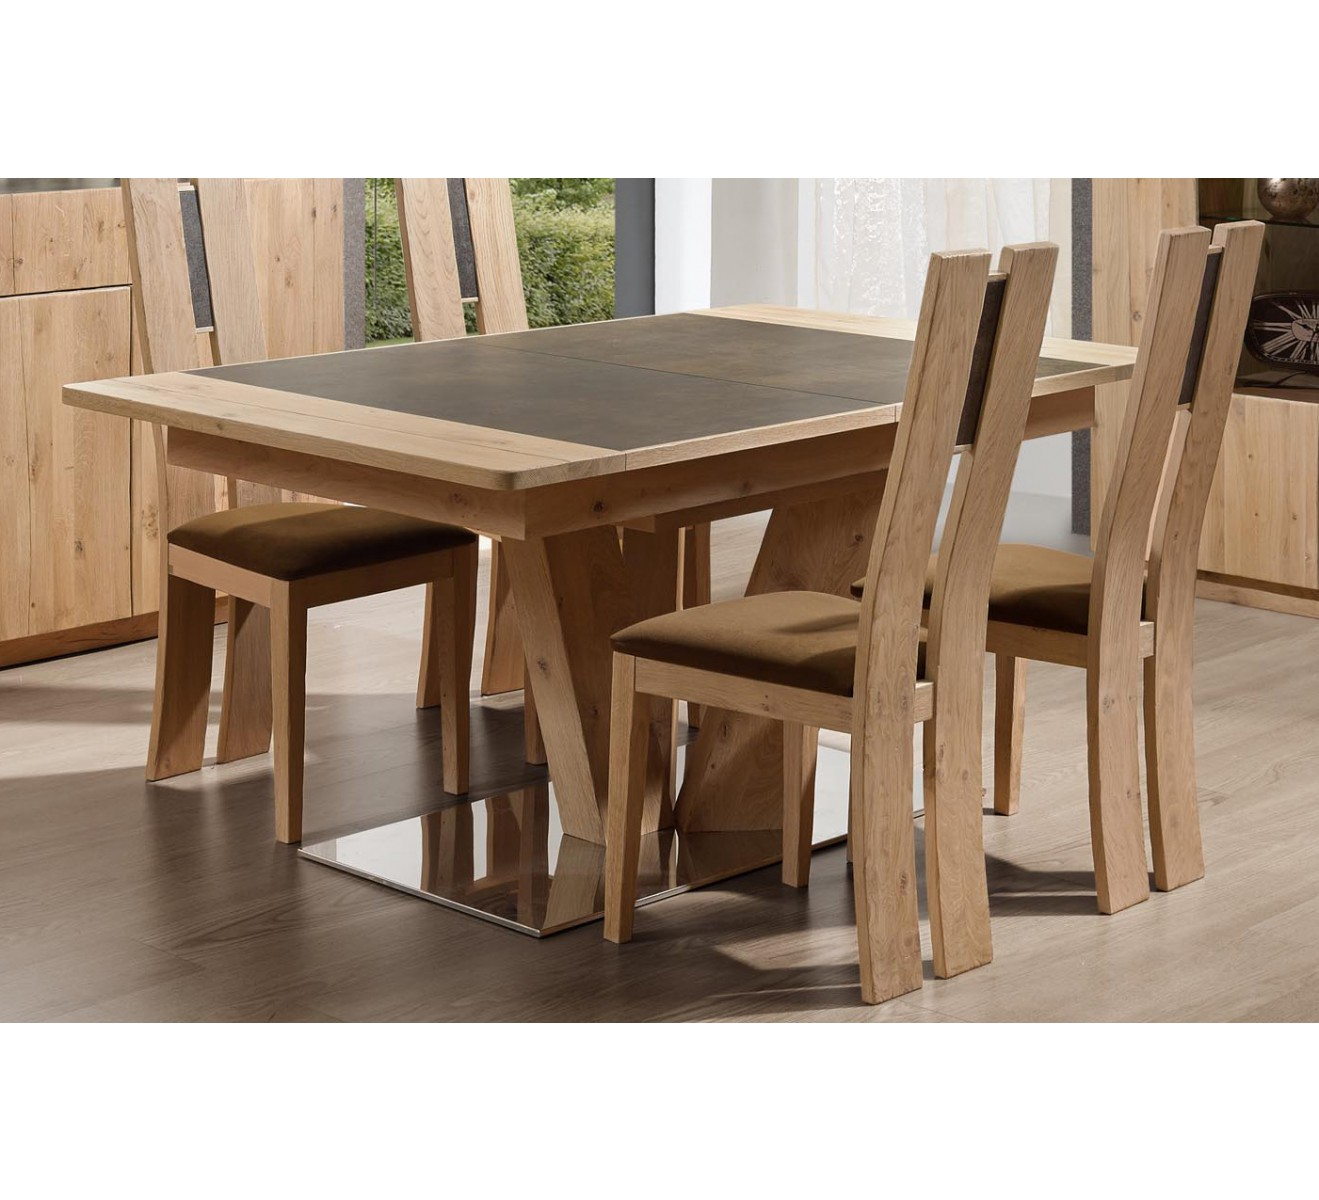 Table Bois Carré Table Carree Pied Central